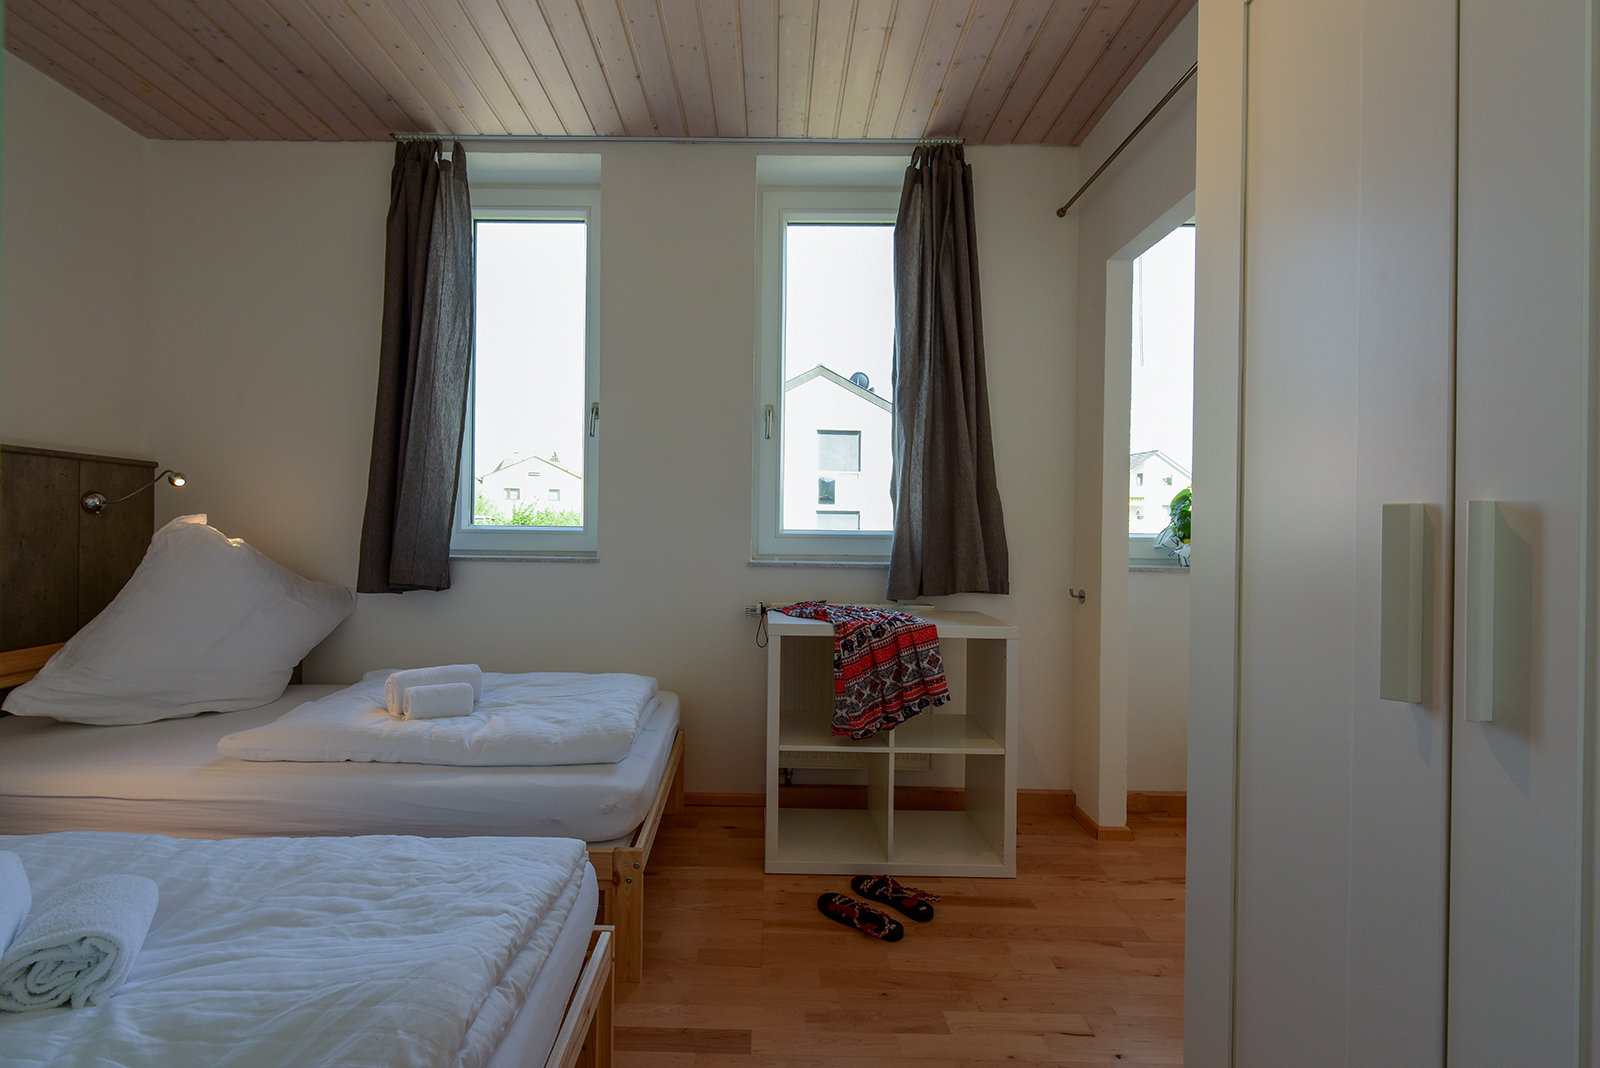 Holiday apartments on Lake Constance: Seeblüte - Bedroom